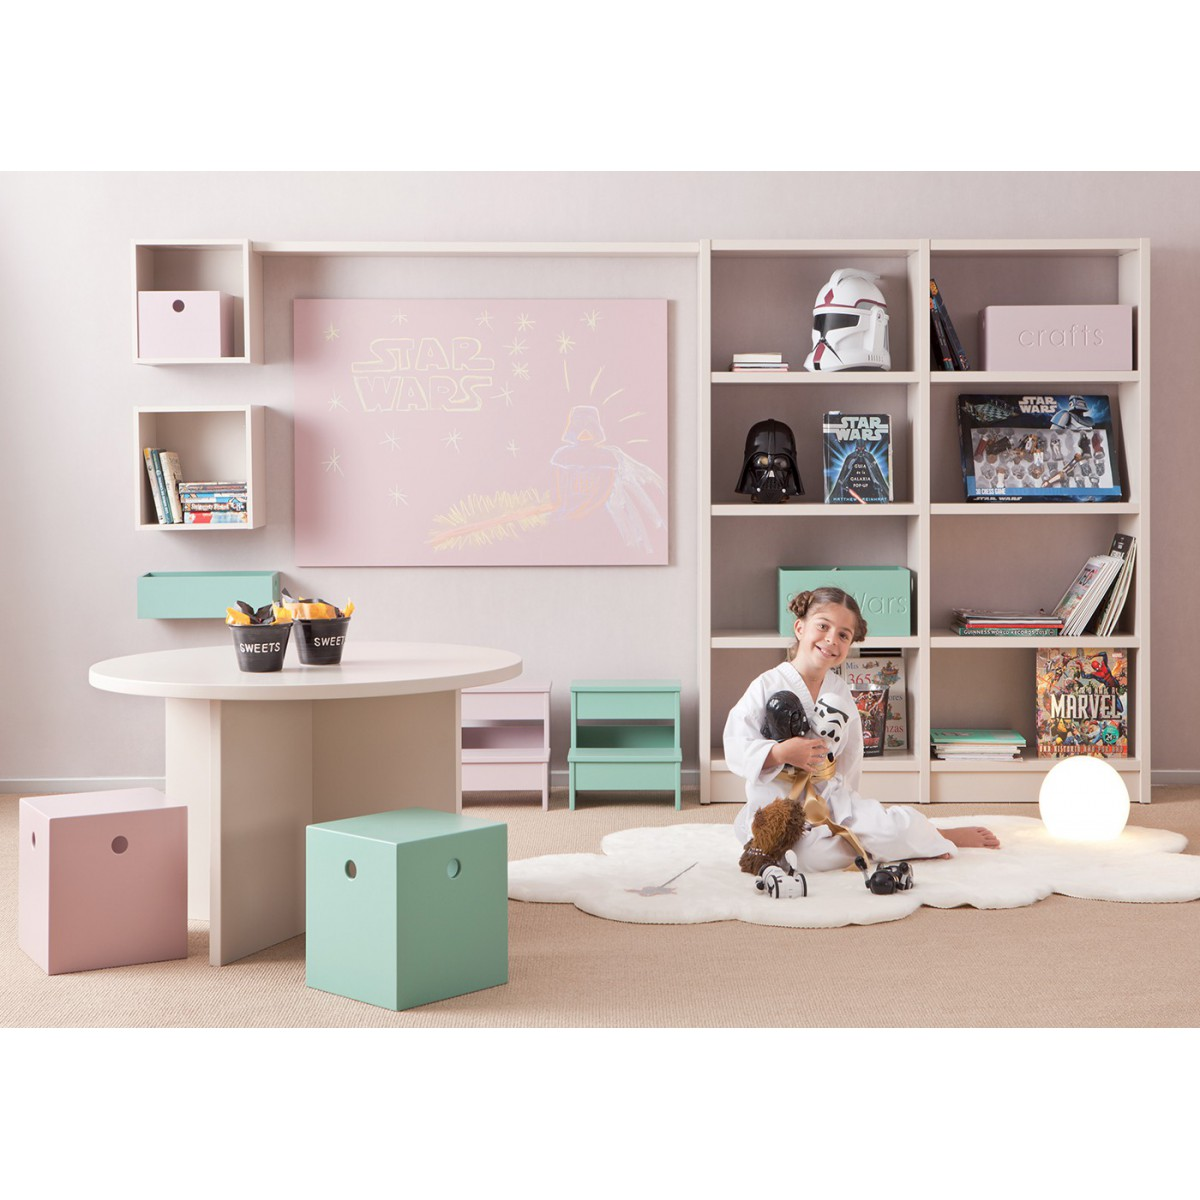 mobilier pour enfants de qualit et design sign asoral. Black Bedroom Furniture Sets. Home Design Ideas